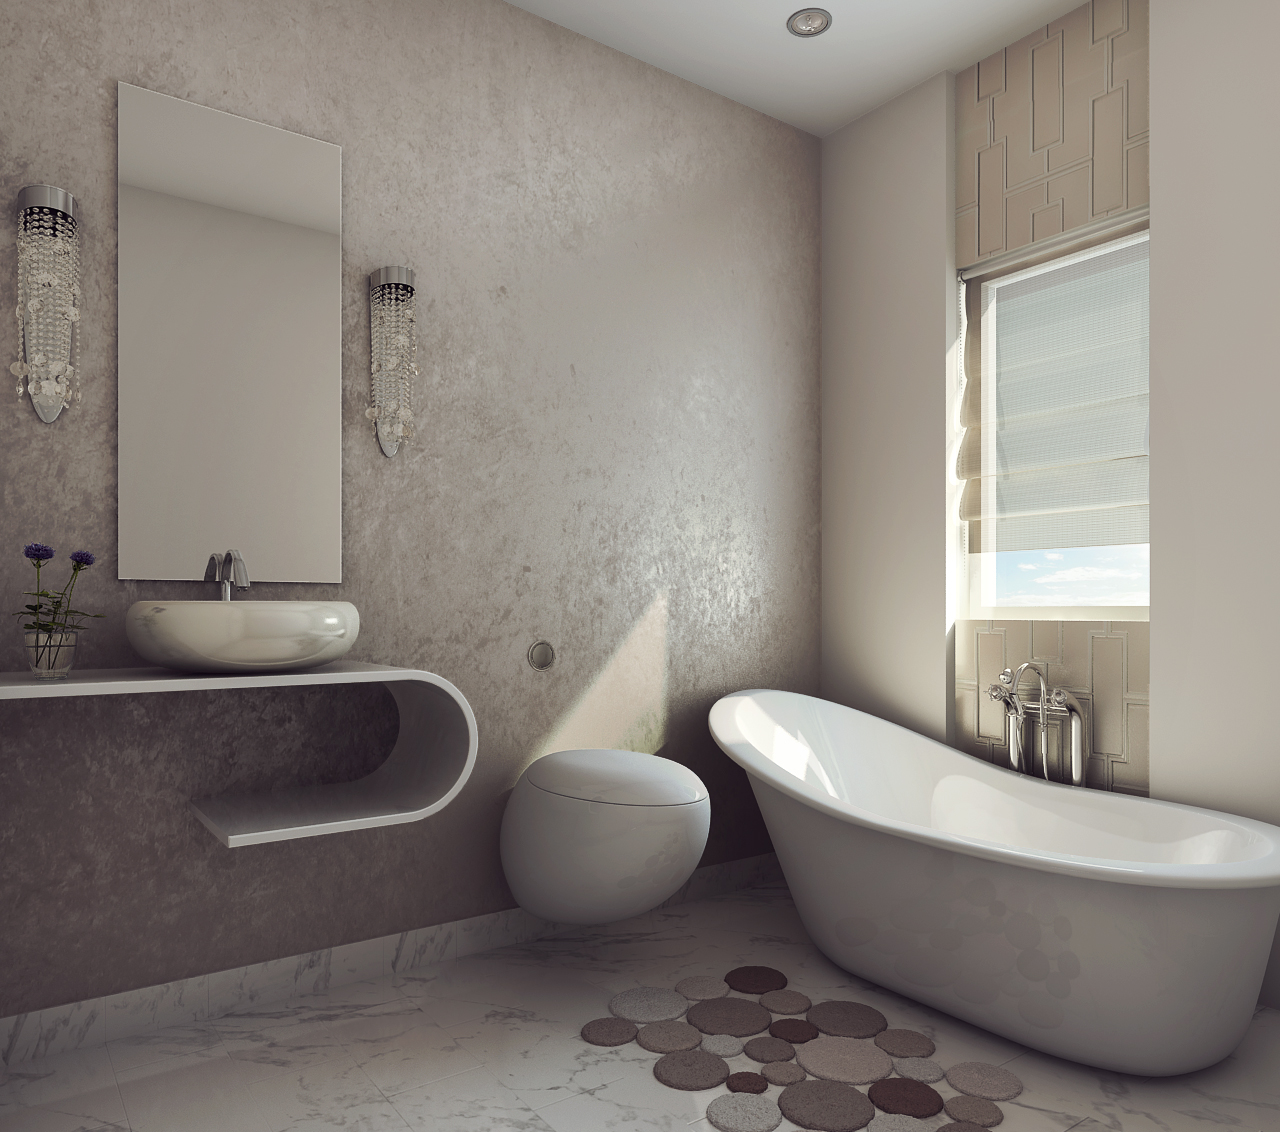 Modern earthy design bath room free 3d model max for Bathroom models photos